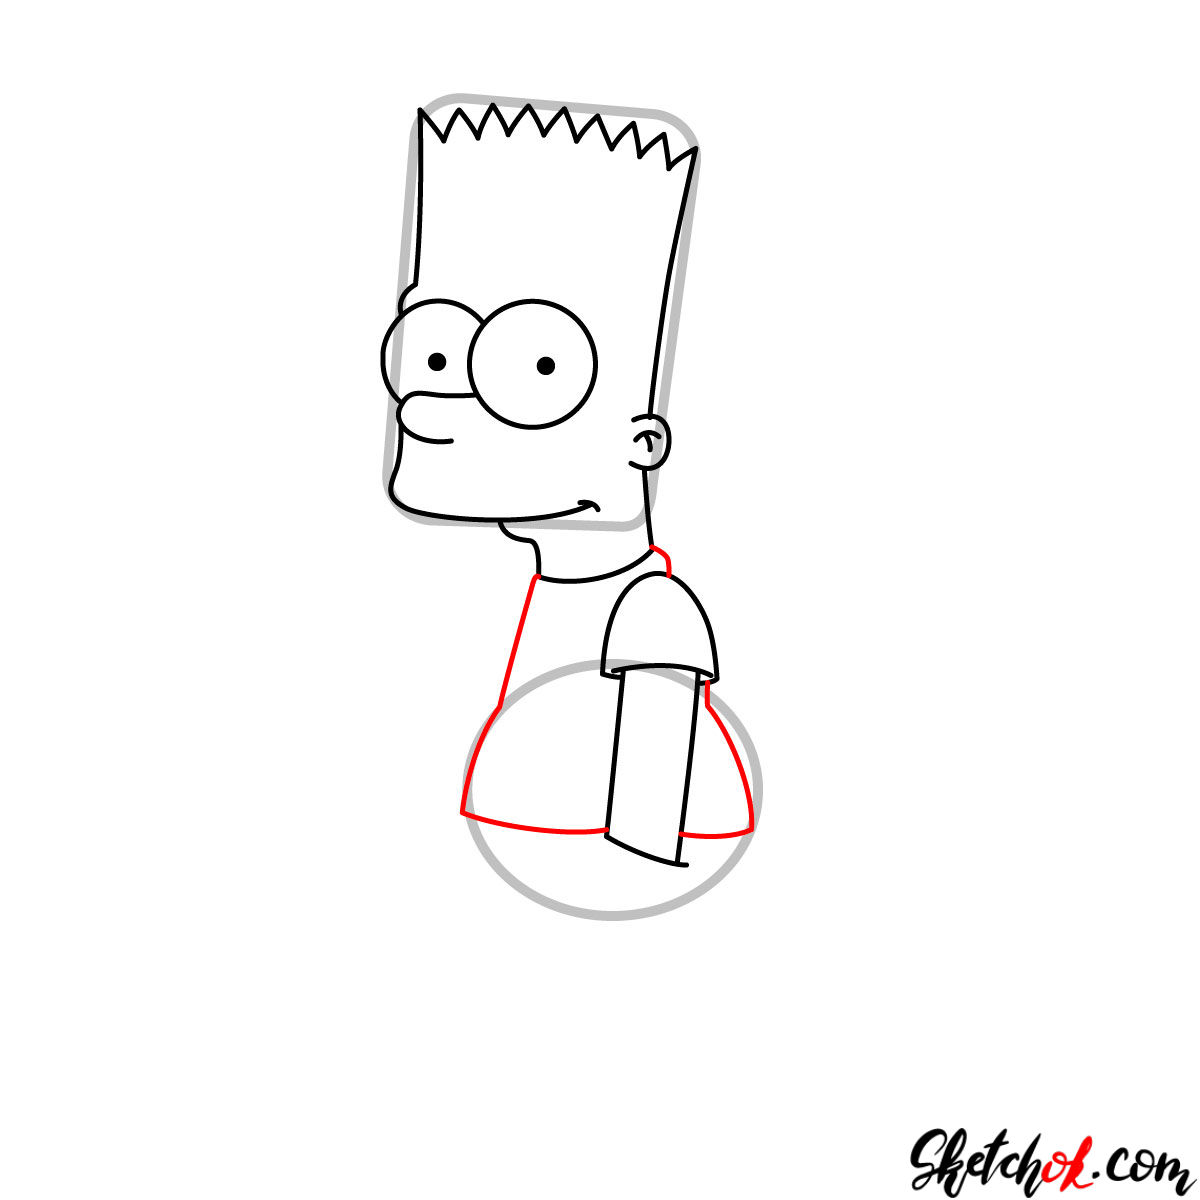 How to draw Bart Simpson - step 05